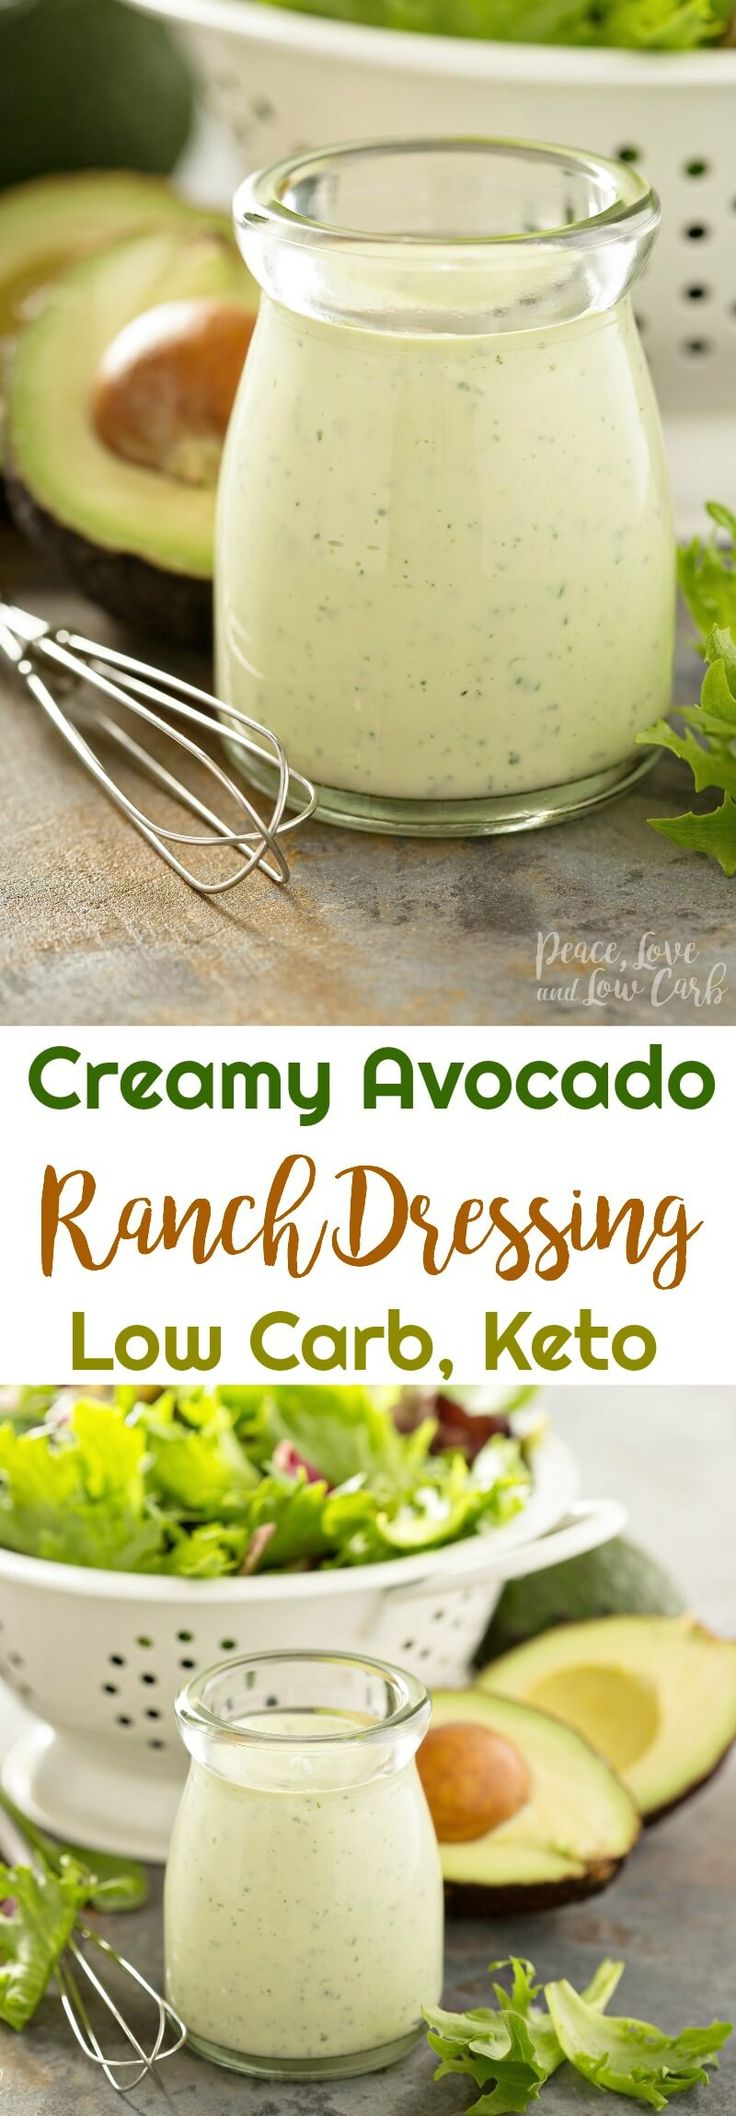 Keto Creamy Avocado Ranch Dressing  | Peace Love and Low Carb via @PeaceLoveLoCarb